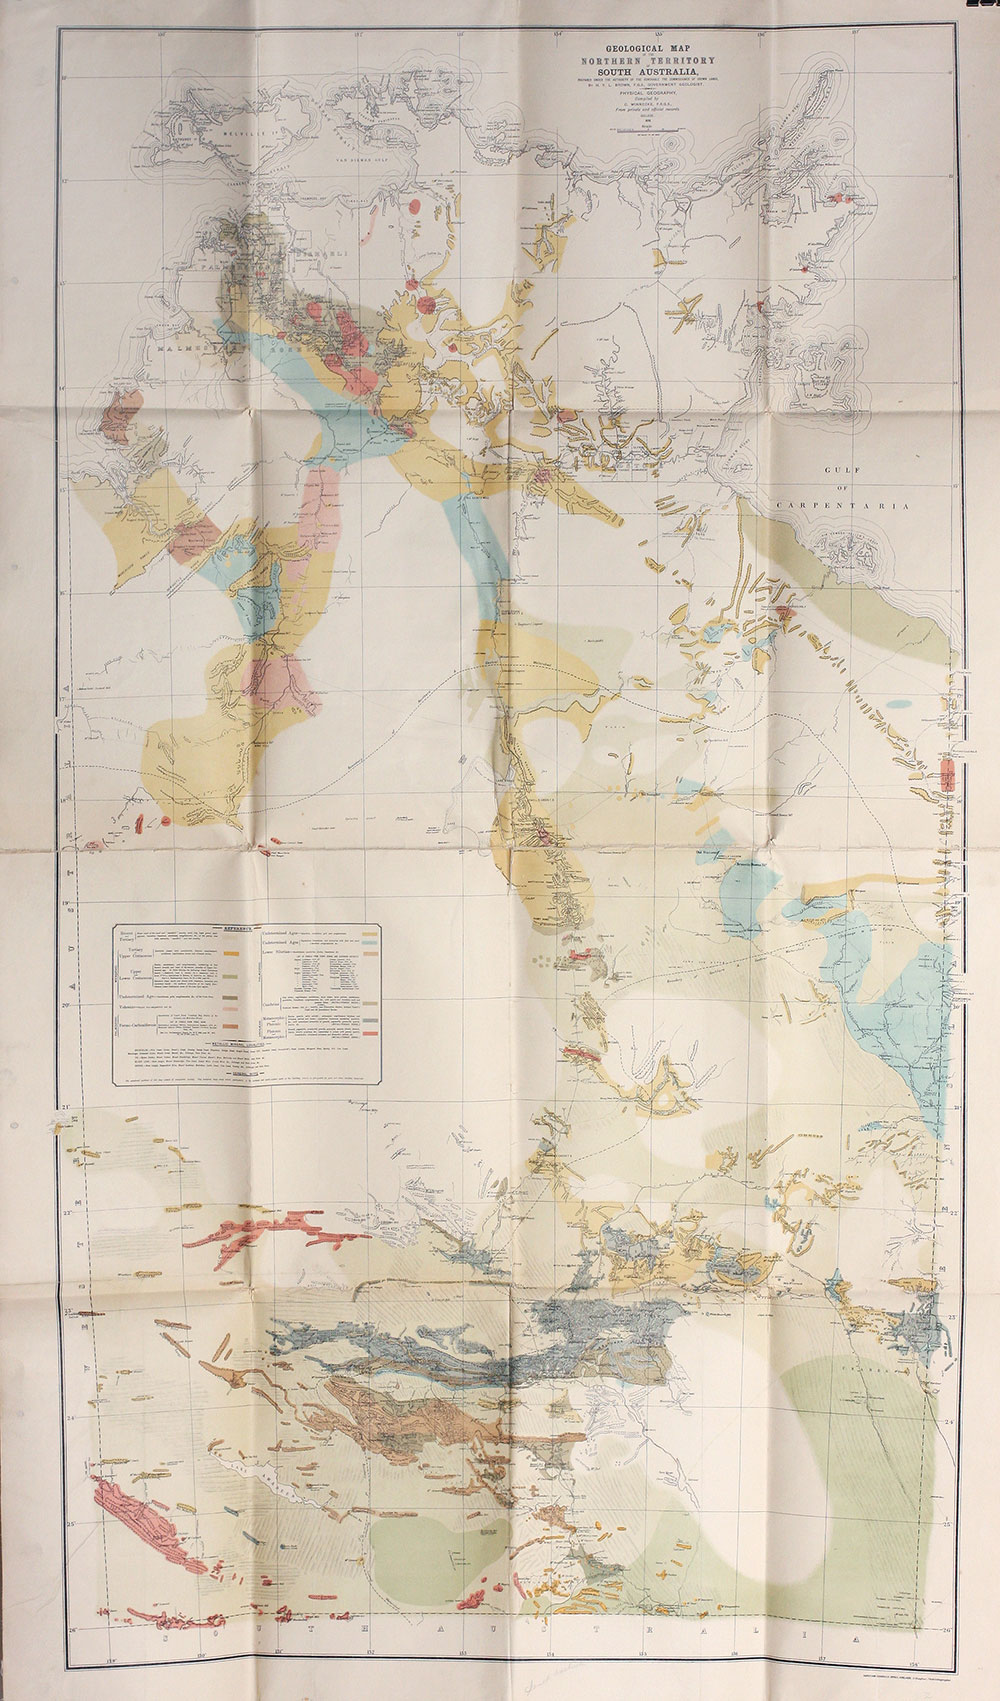 Map Of South Australia And Northern Territory.Geological Map Of The Northern Territory Of South Australia